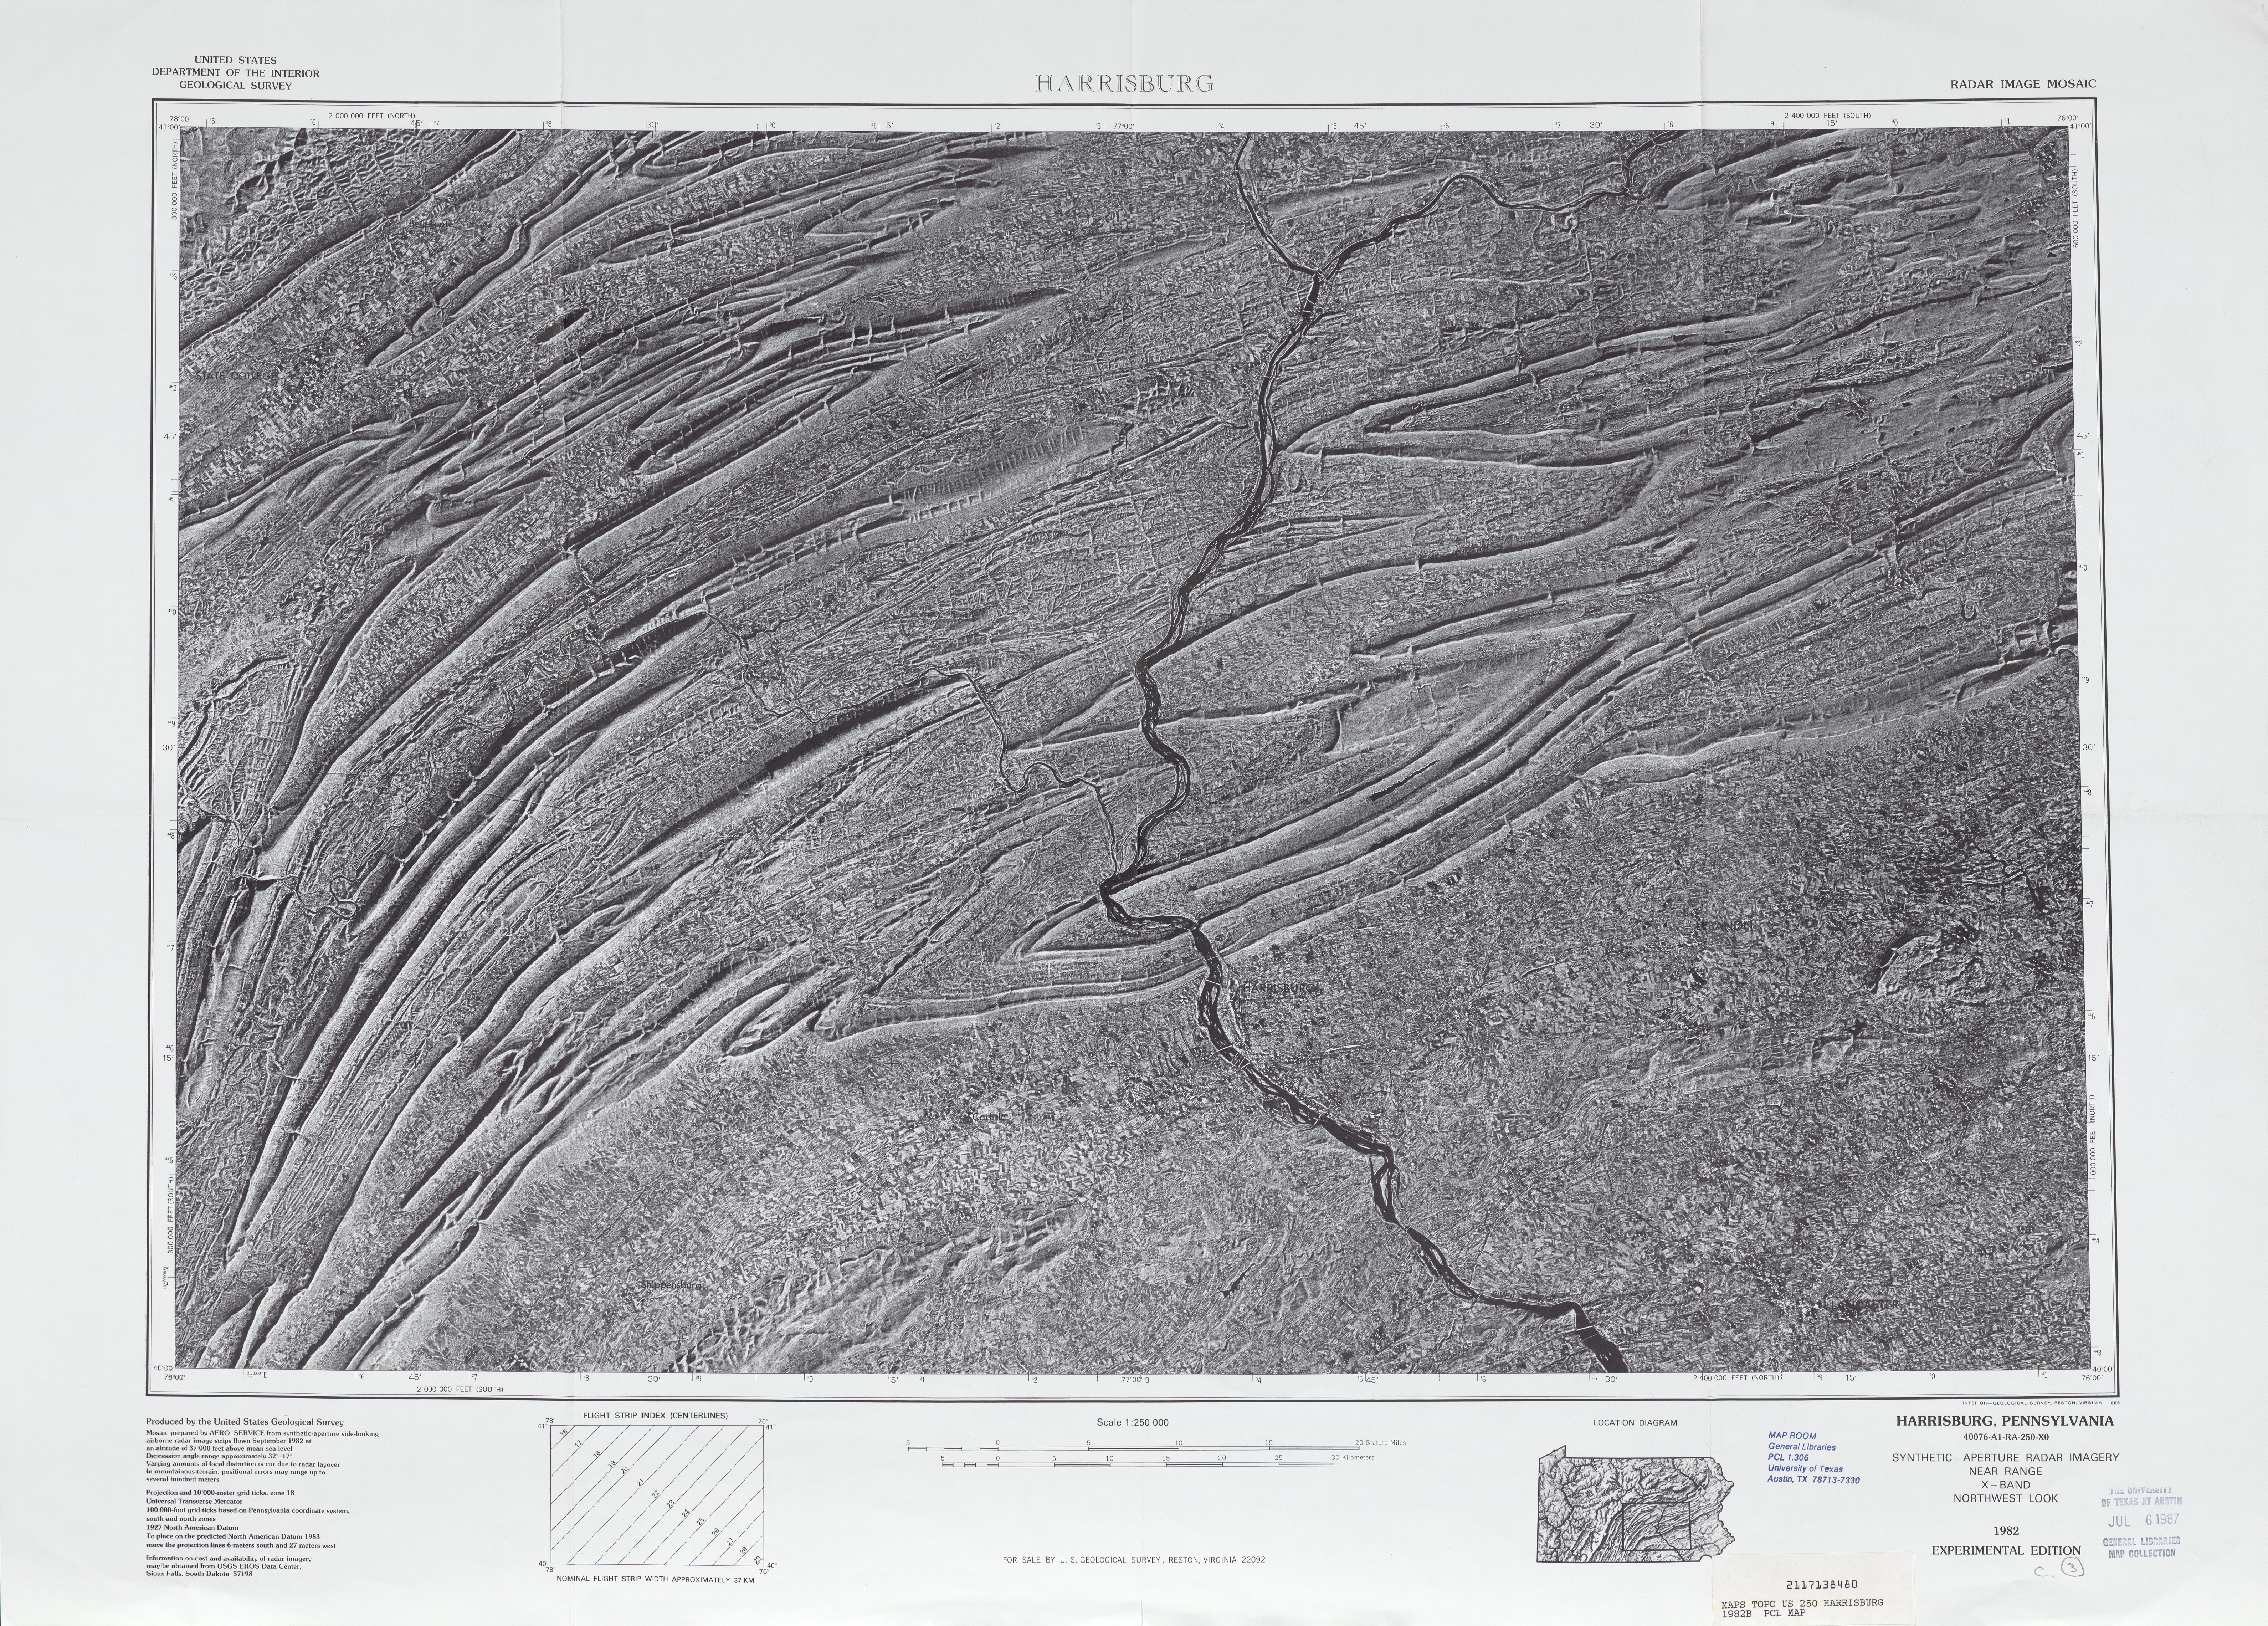 Harrisburg Radar Image Mosaic Sheet, United States 1982